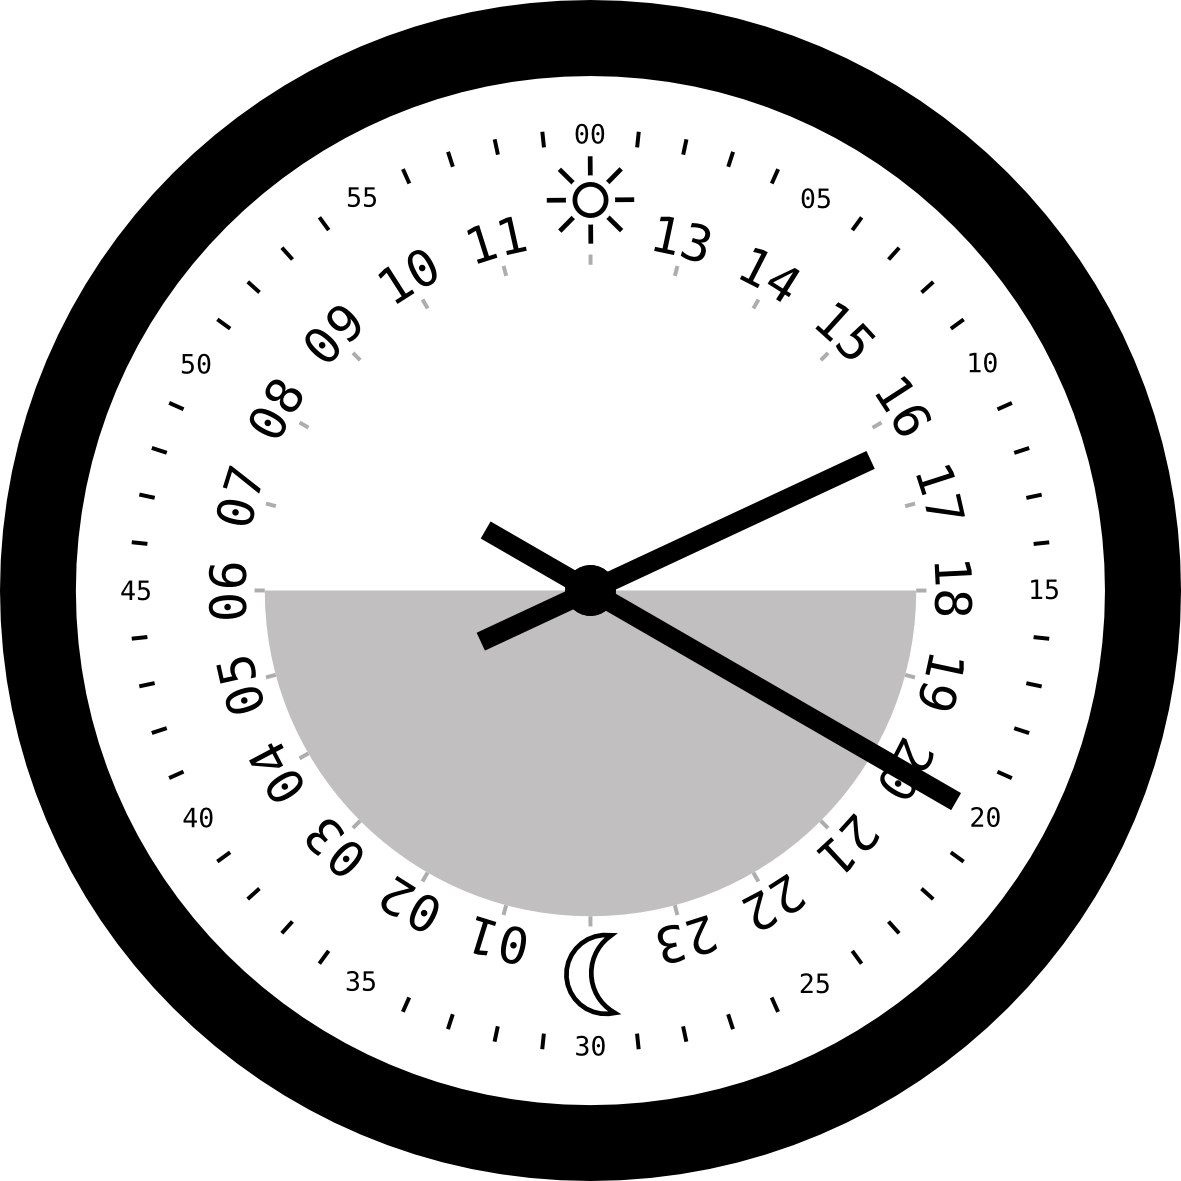 24 hour clock face template Recherche Google – Clock Face Template